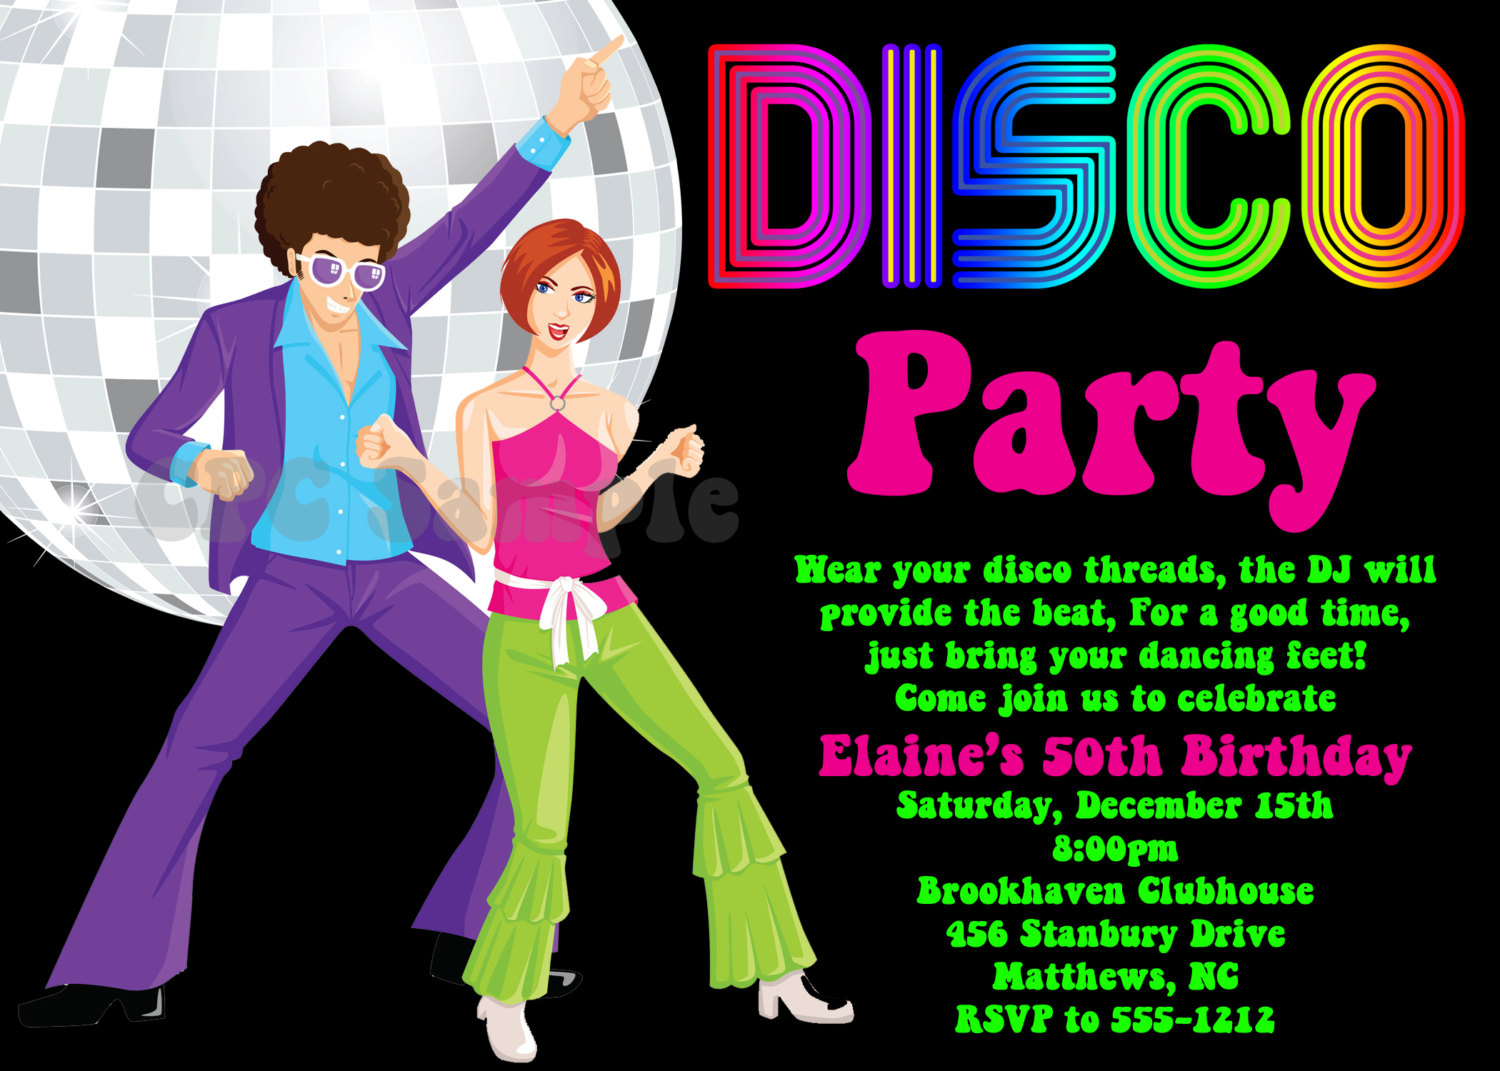 Party clipart 70's Like 70s 90s Disco Disco